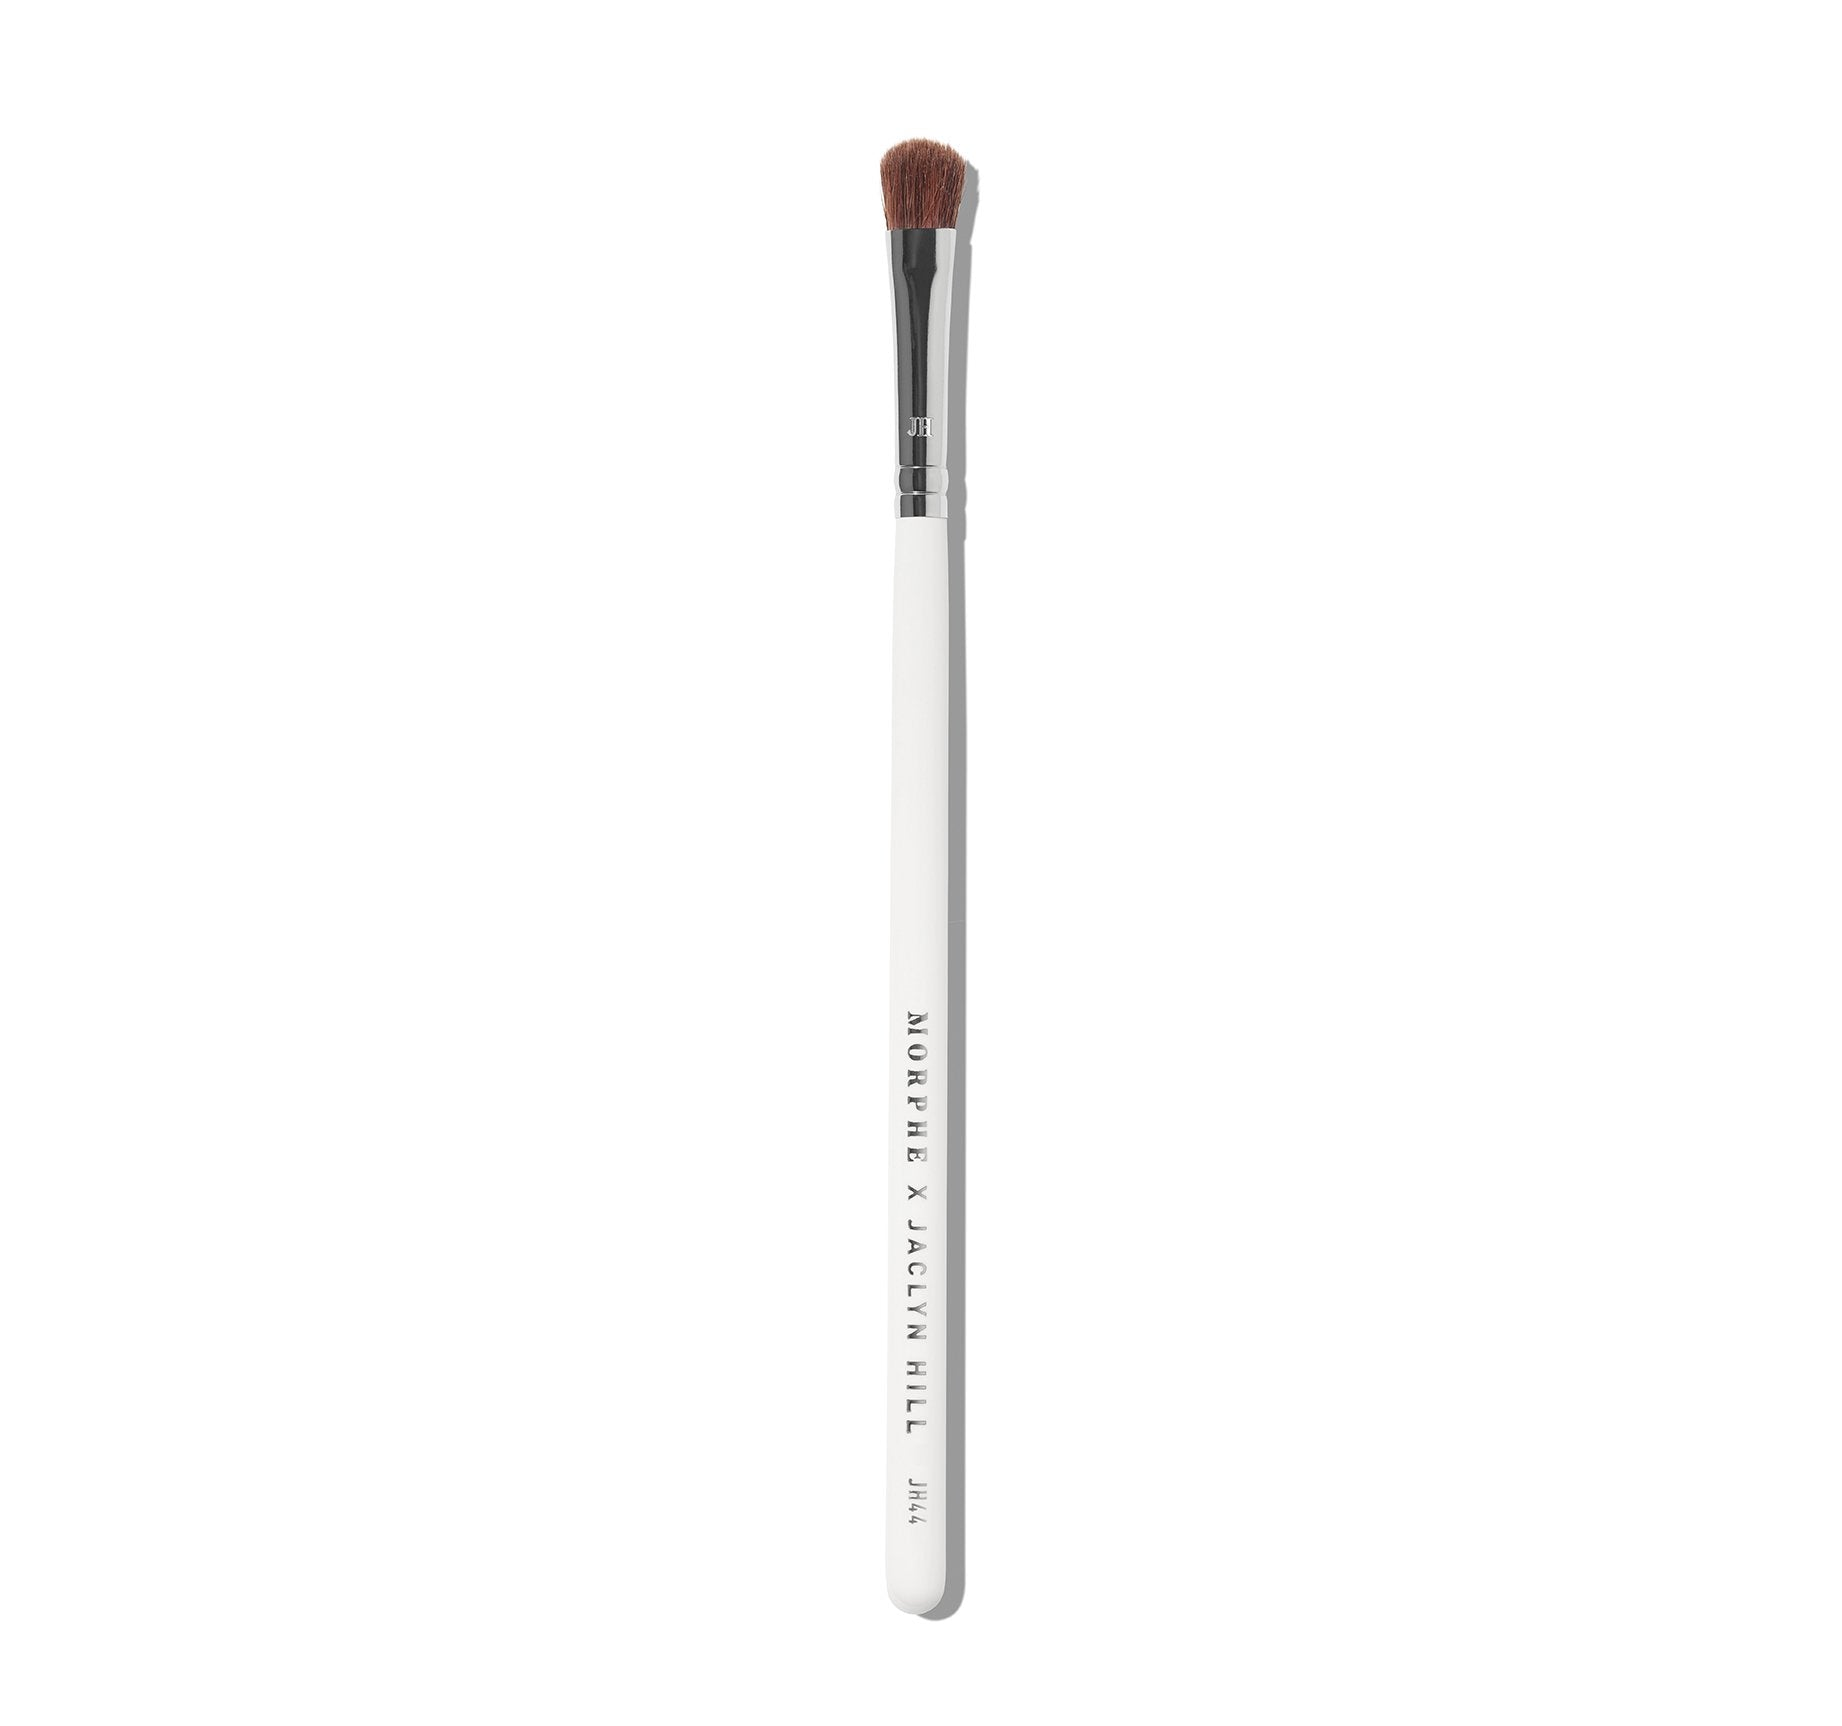 MORPHE X JACLYN HILL JH44 SHADOW HUSTLE BRUSH, view larger image